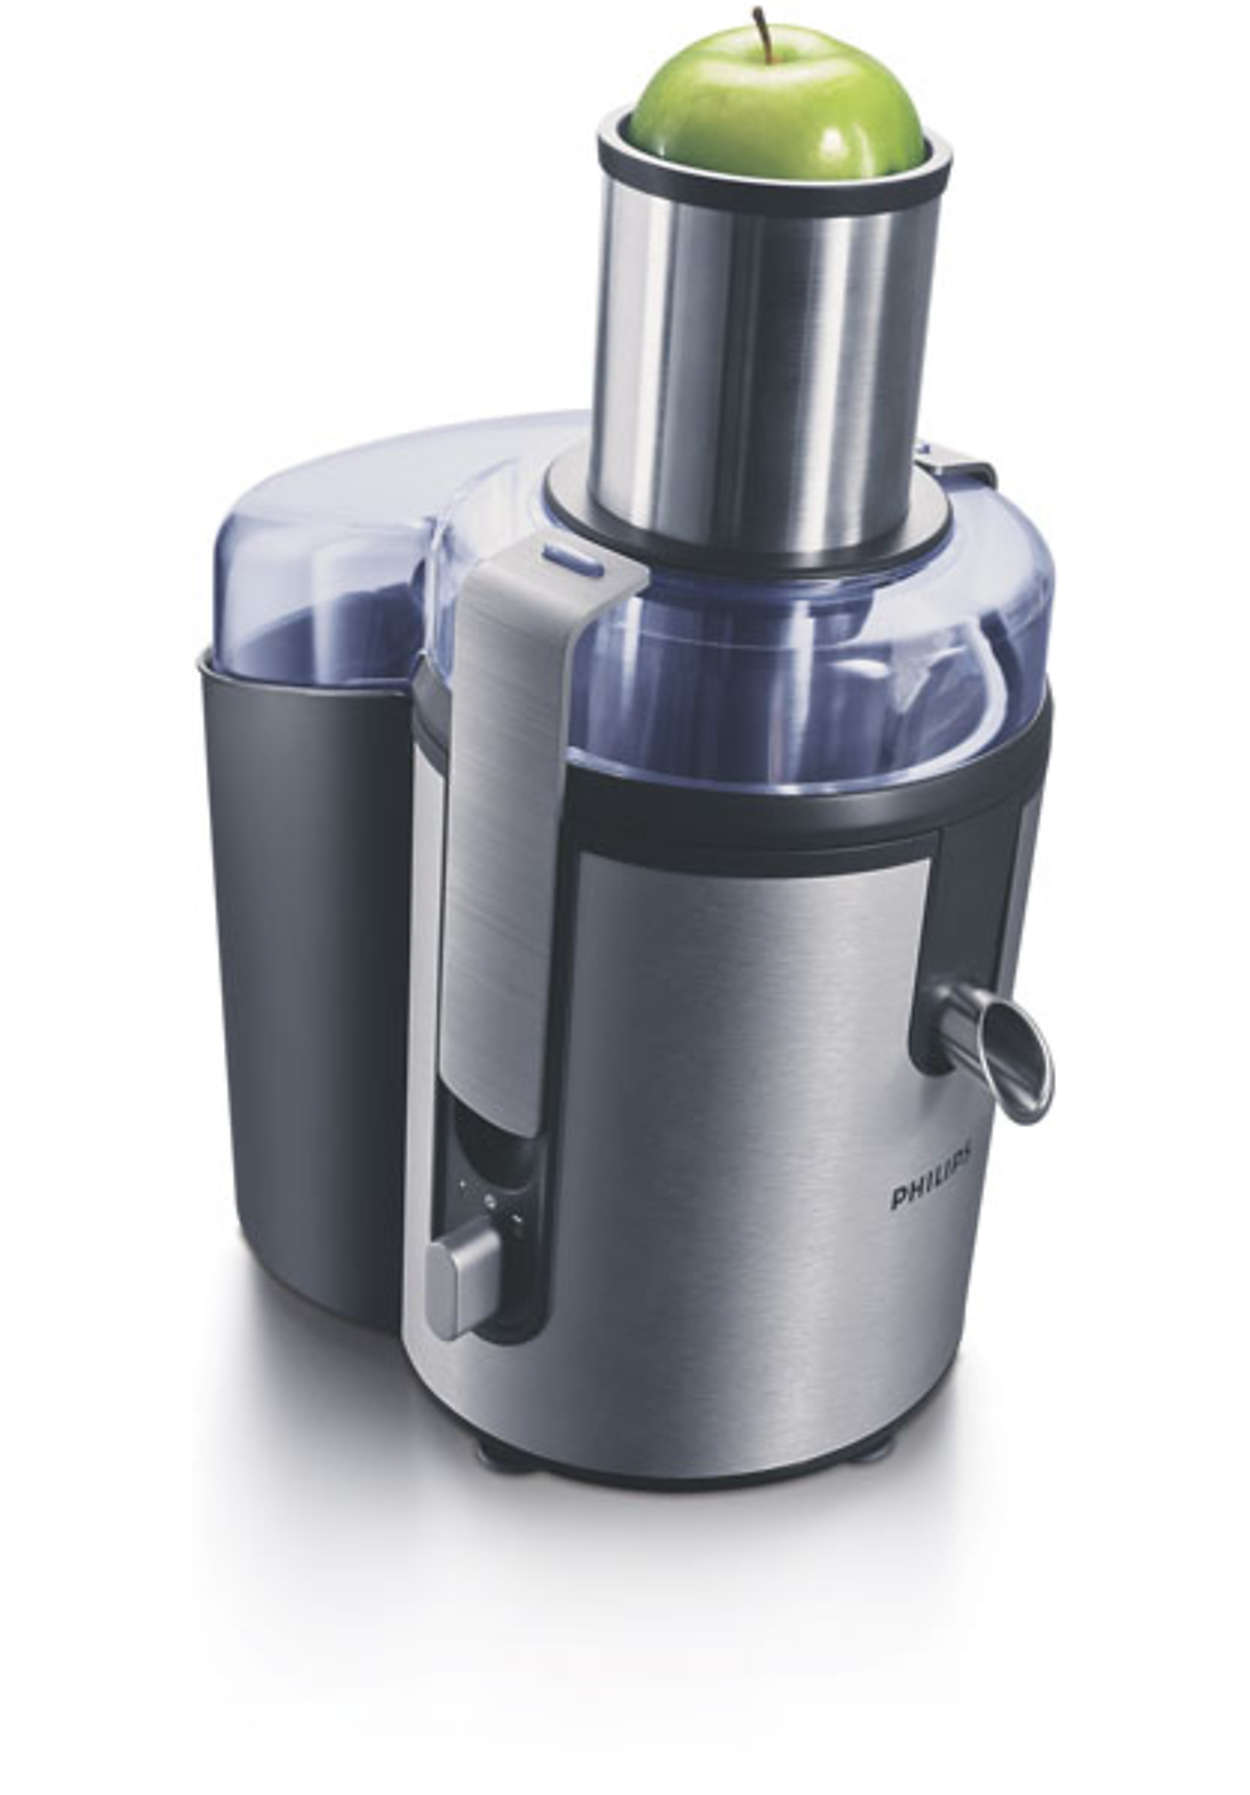 Philips Slowjuicer Elgiganten : Aluminium Collection Juicer HR1865/00 Philips